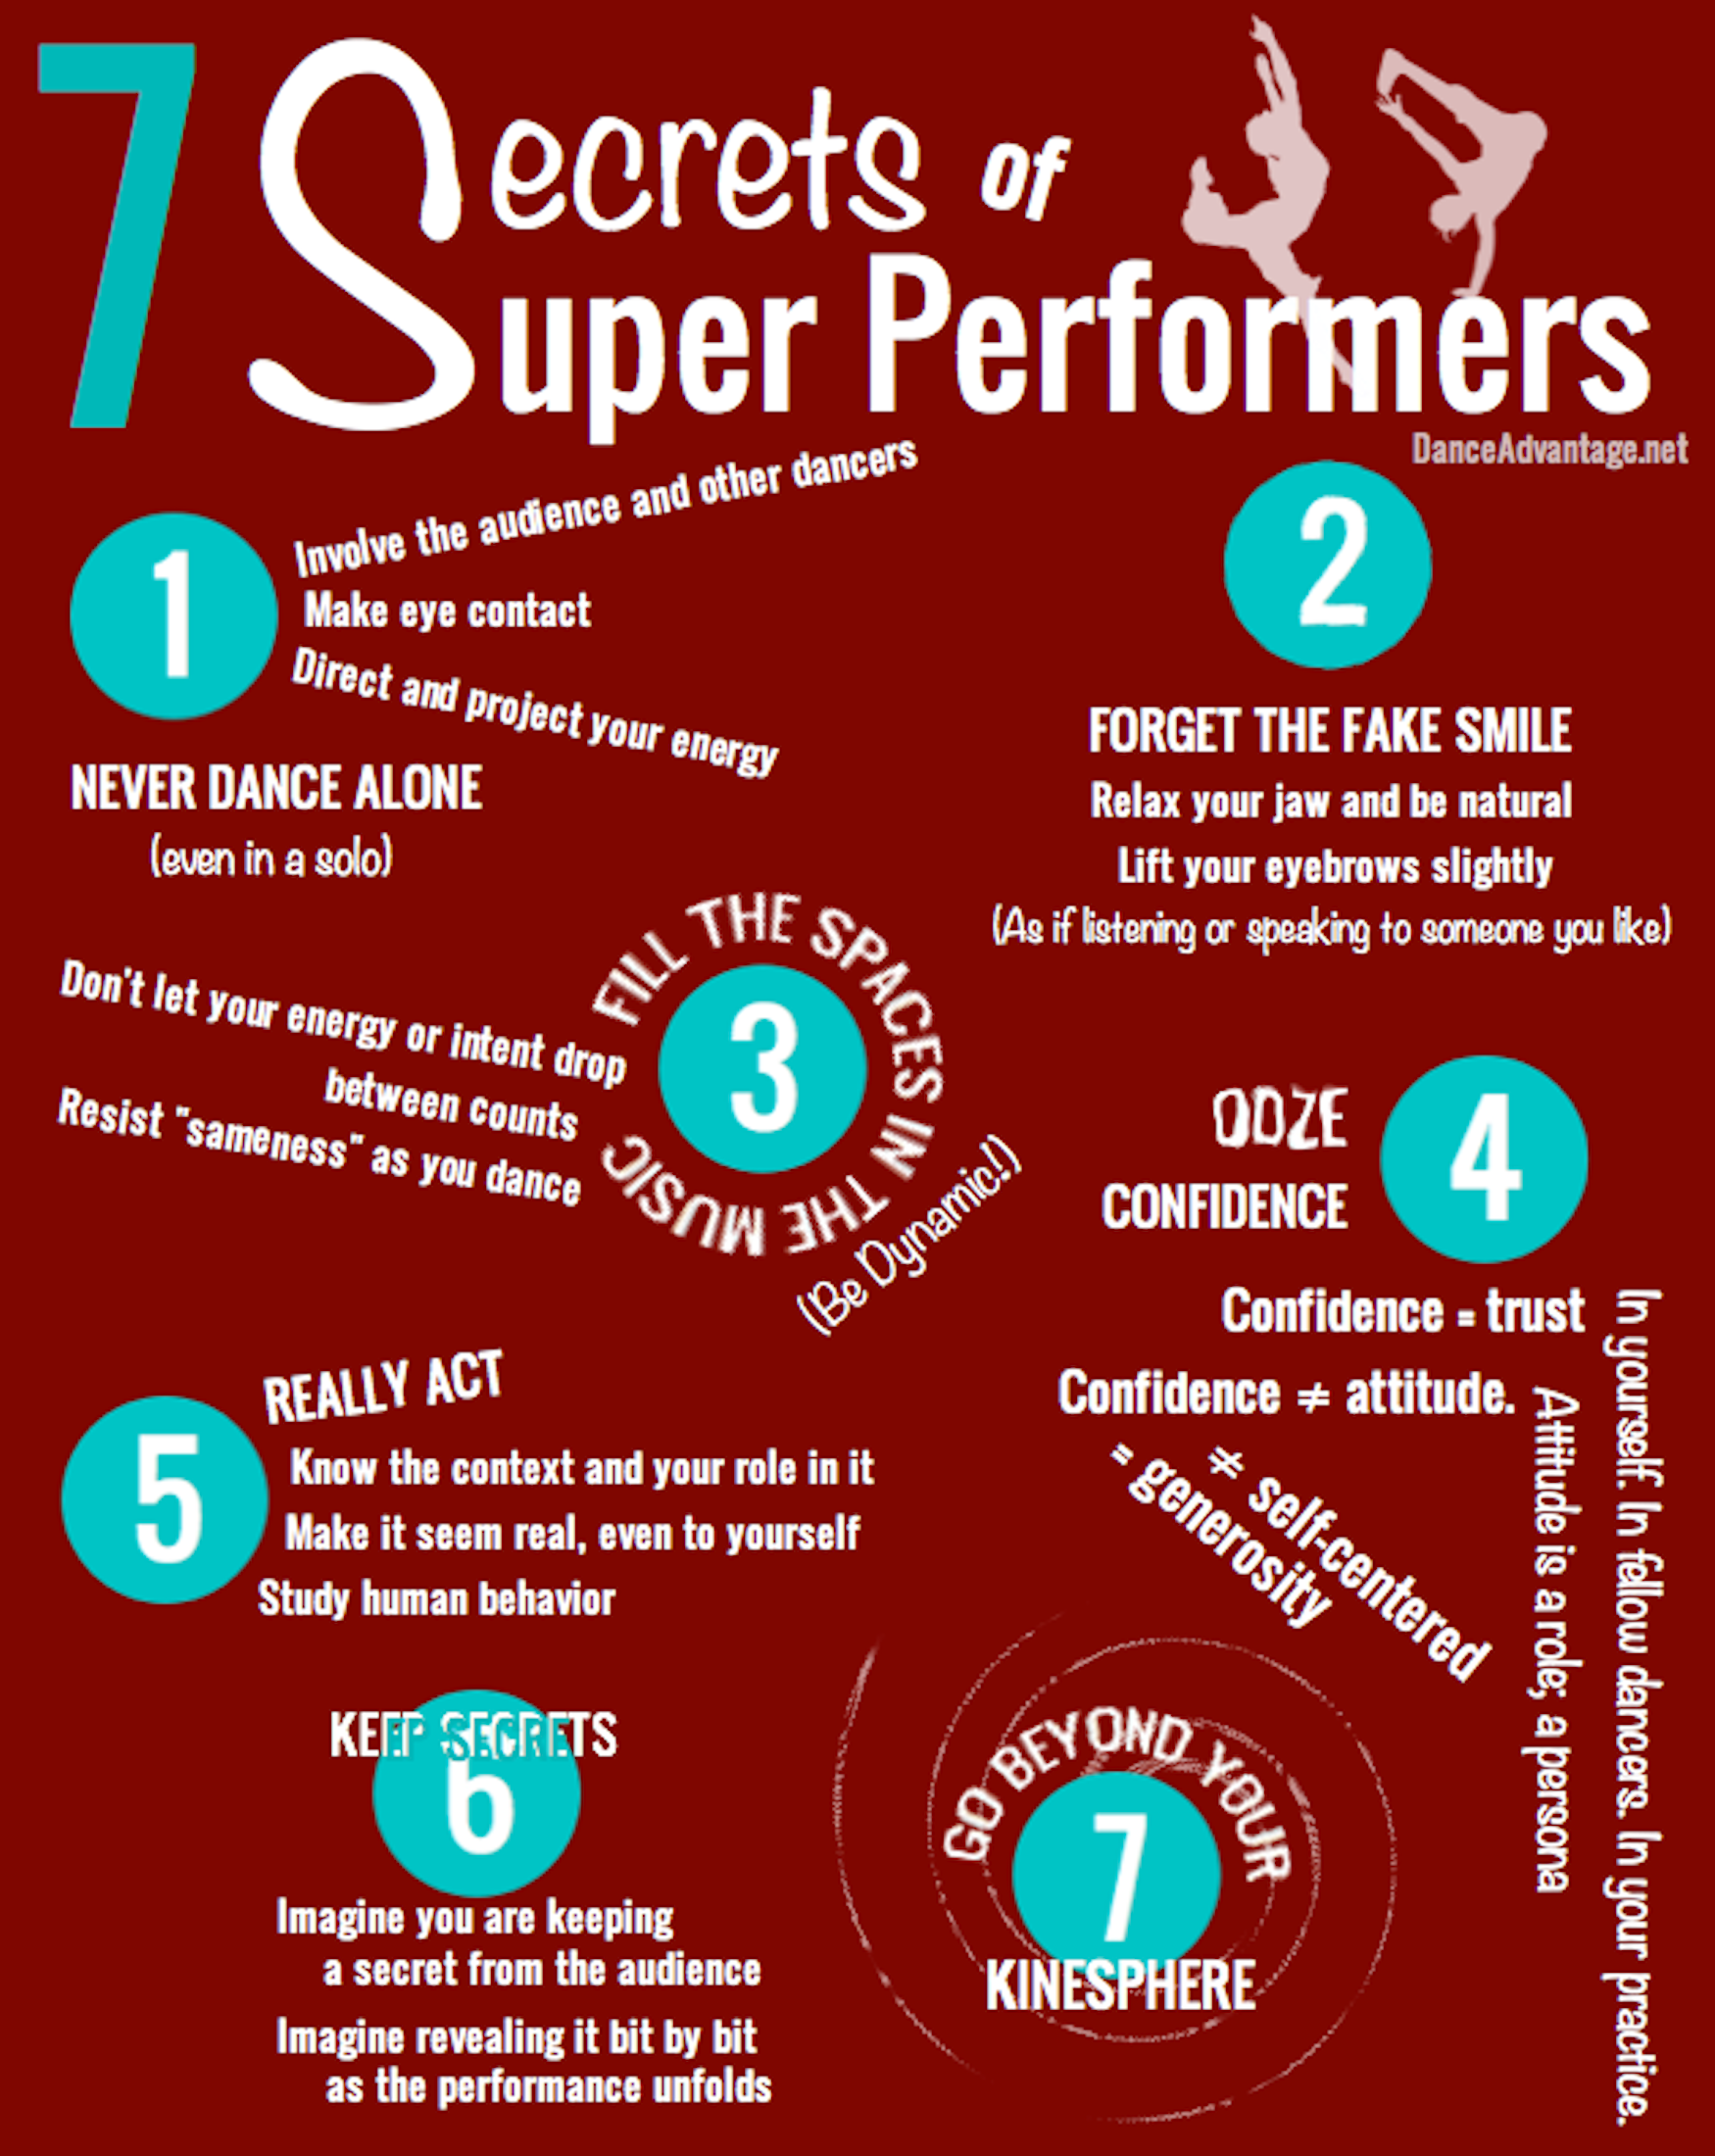 Really top notch advice! 7 Secrets Of Super Performers